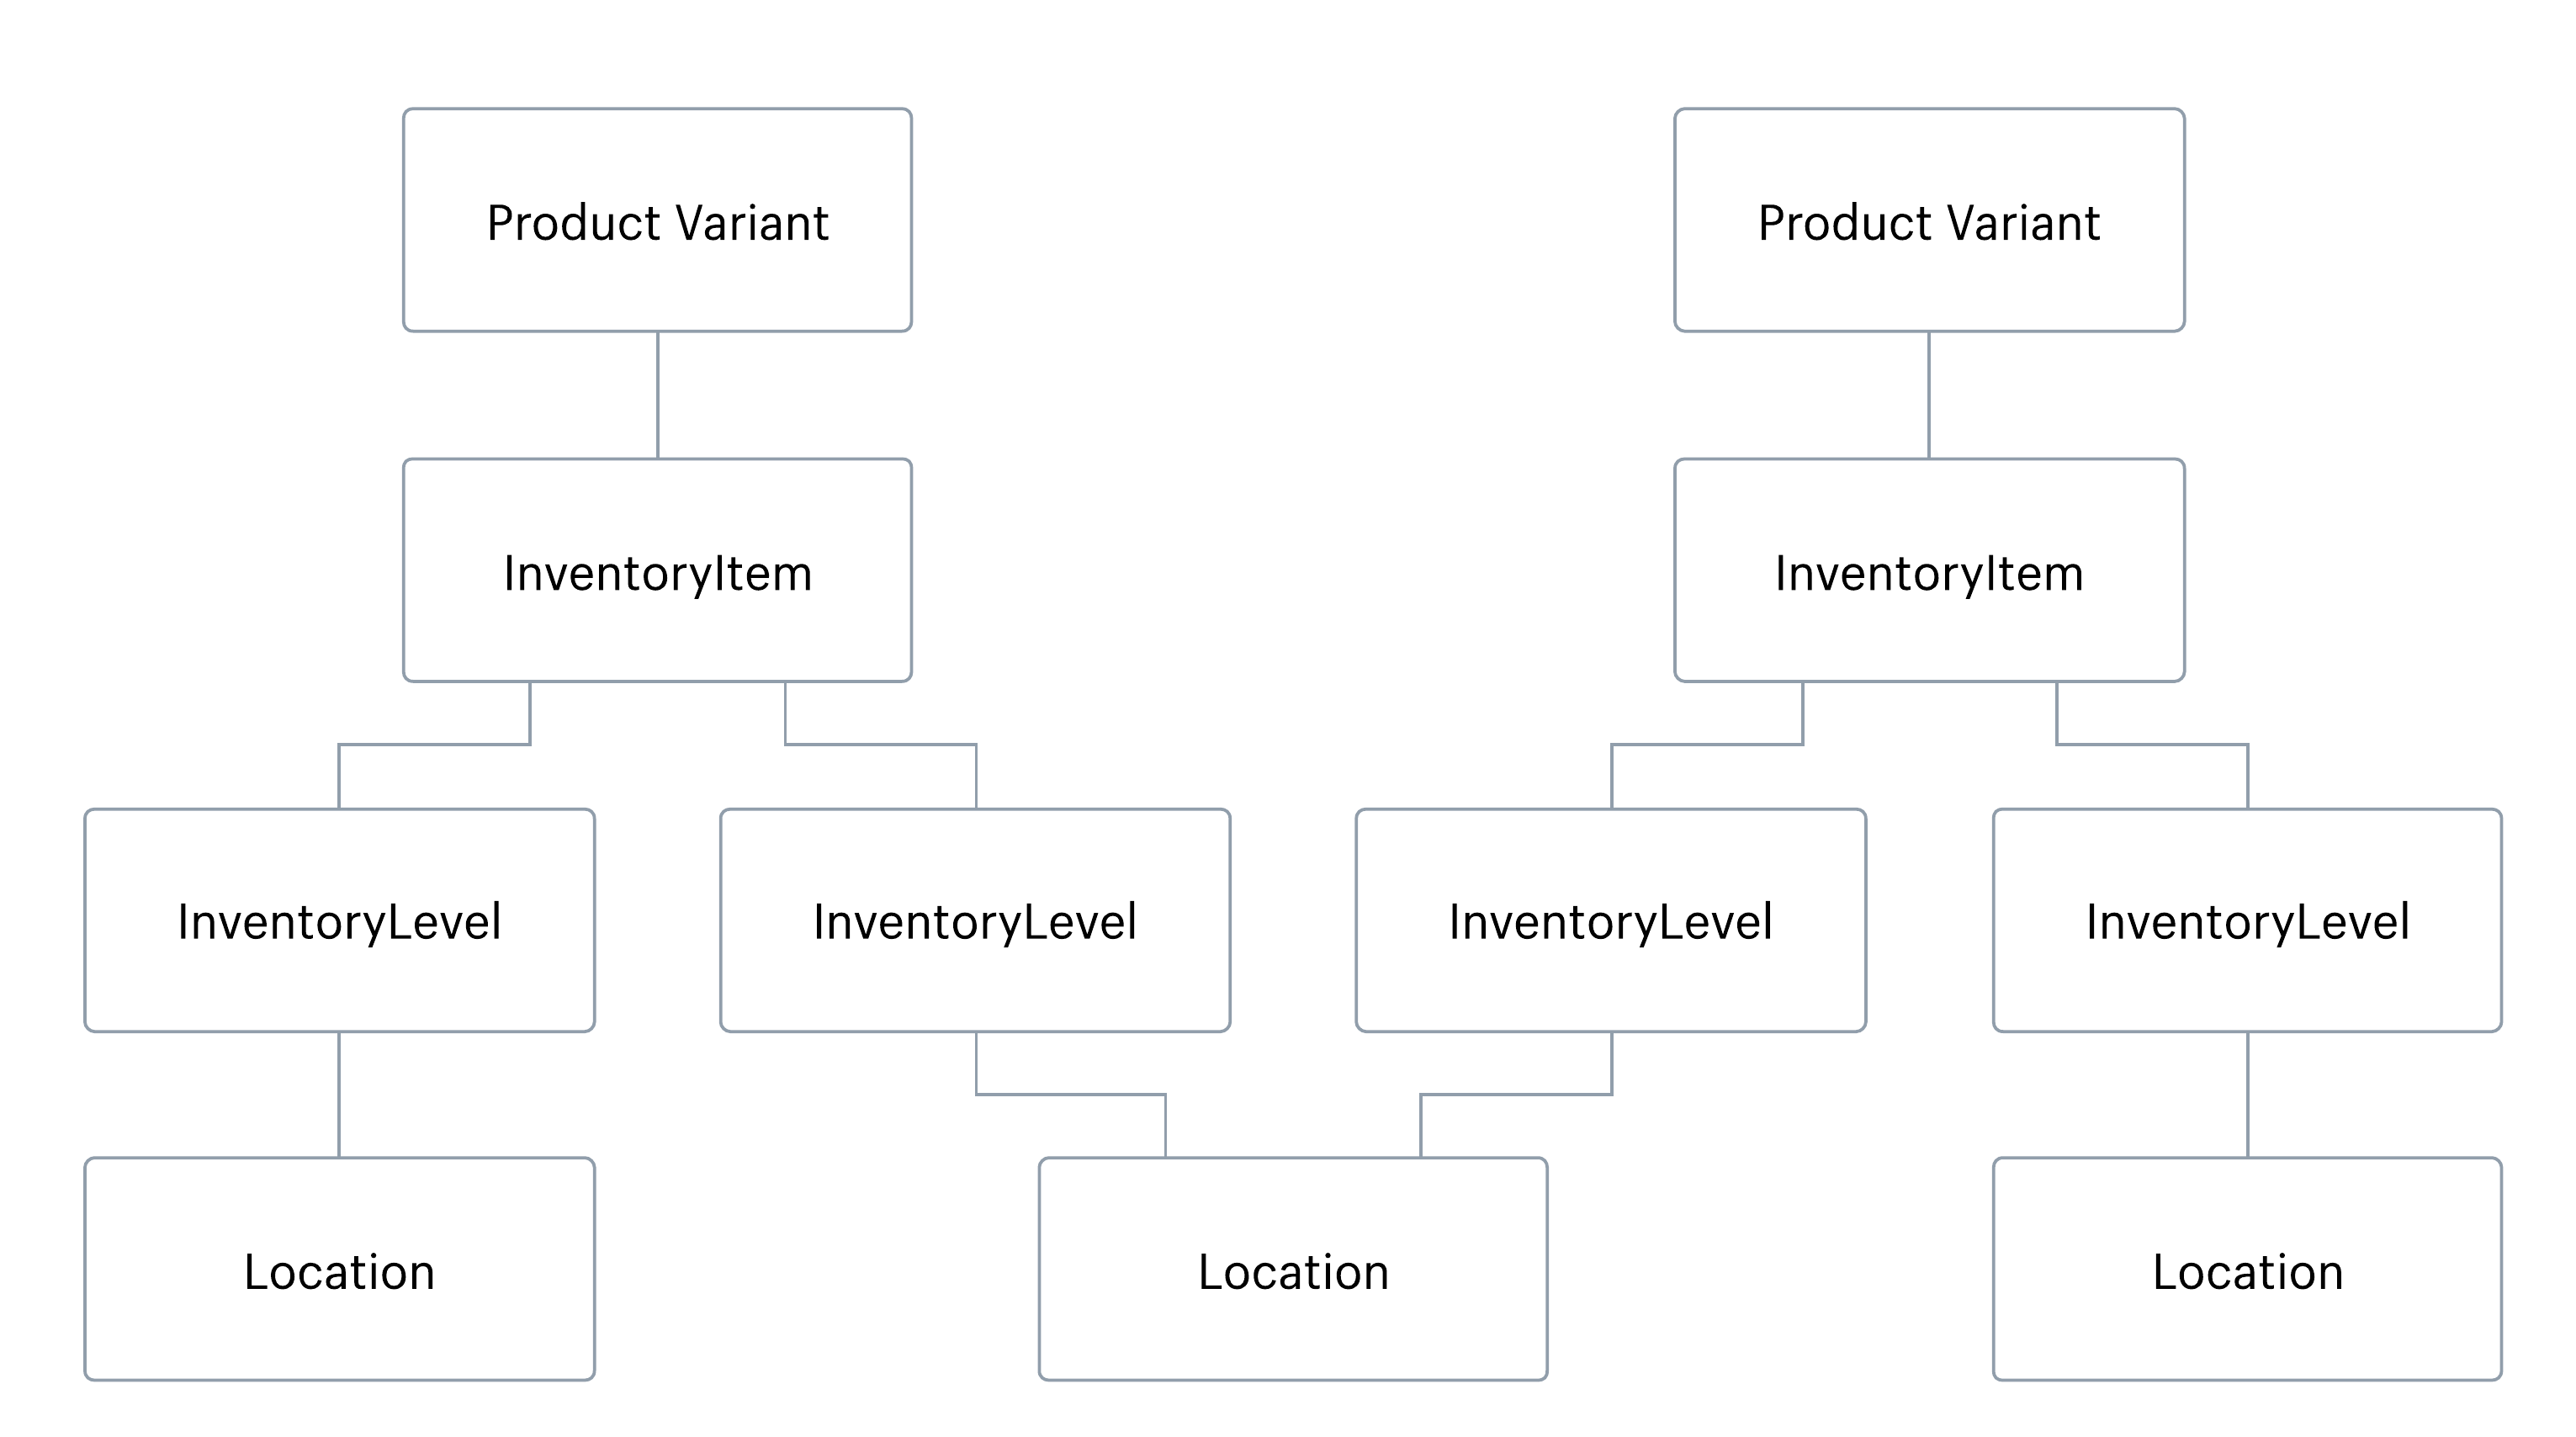 Flow diagram showing the relationships between the four inventory resources